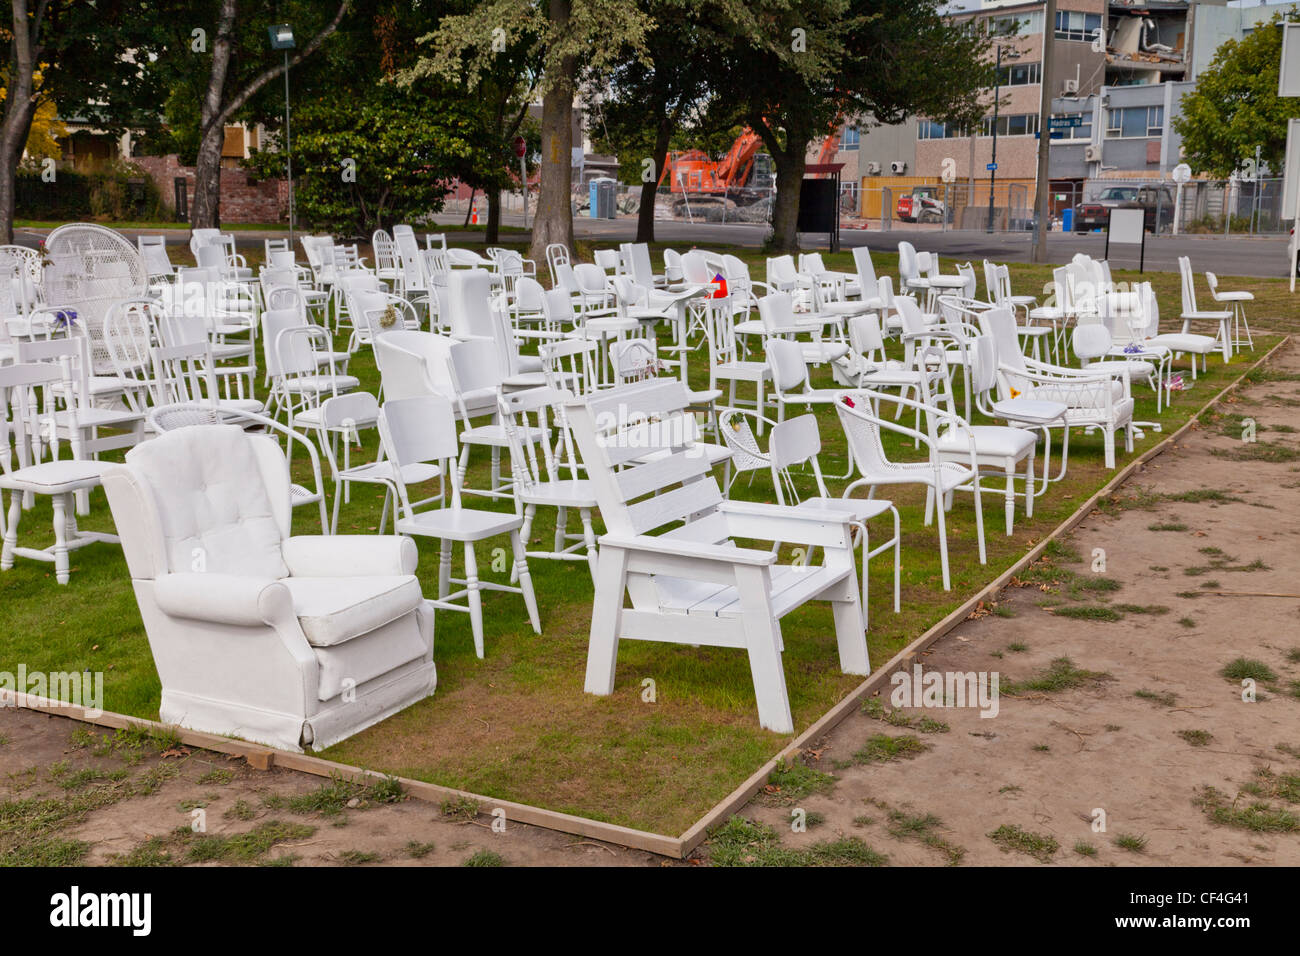 185 Empty Chairs, a temporary art installation - Stock Image